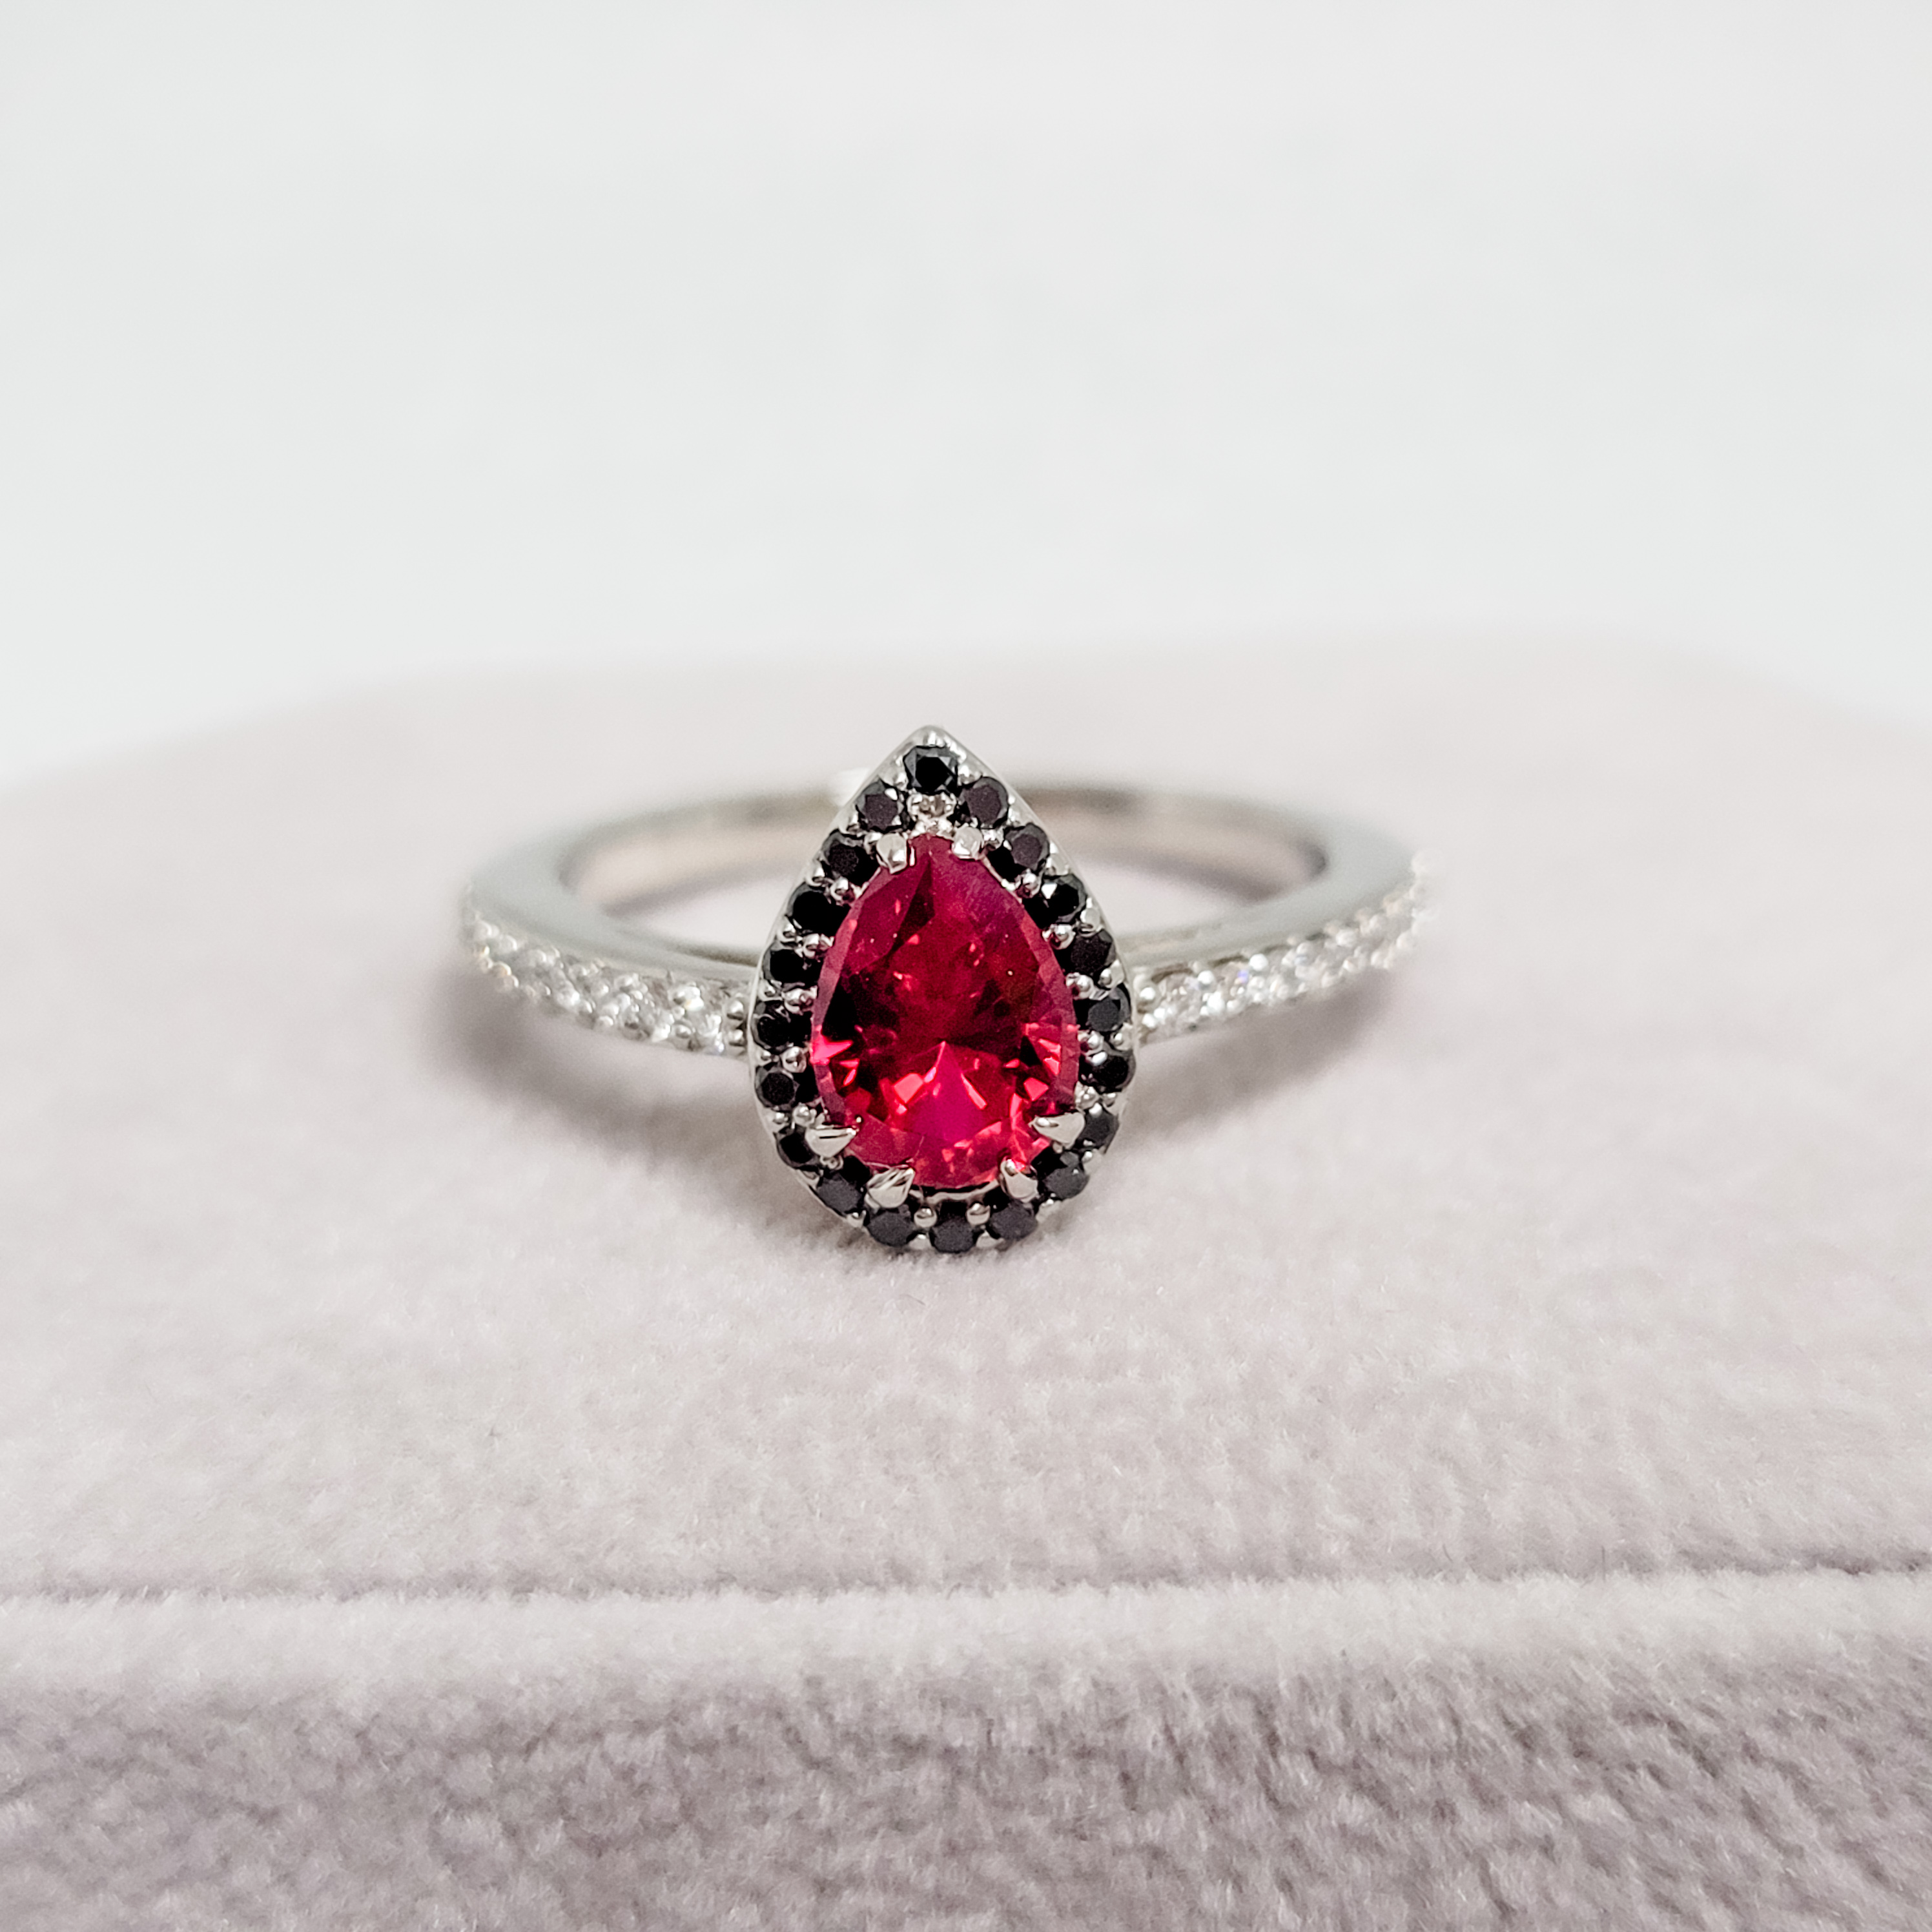 Red Pear Shaped Stone in Halo Engagement Ring